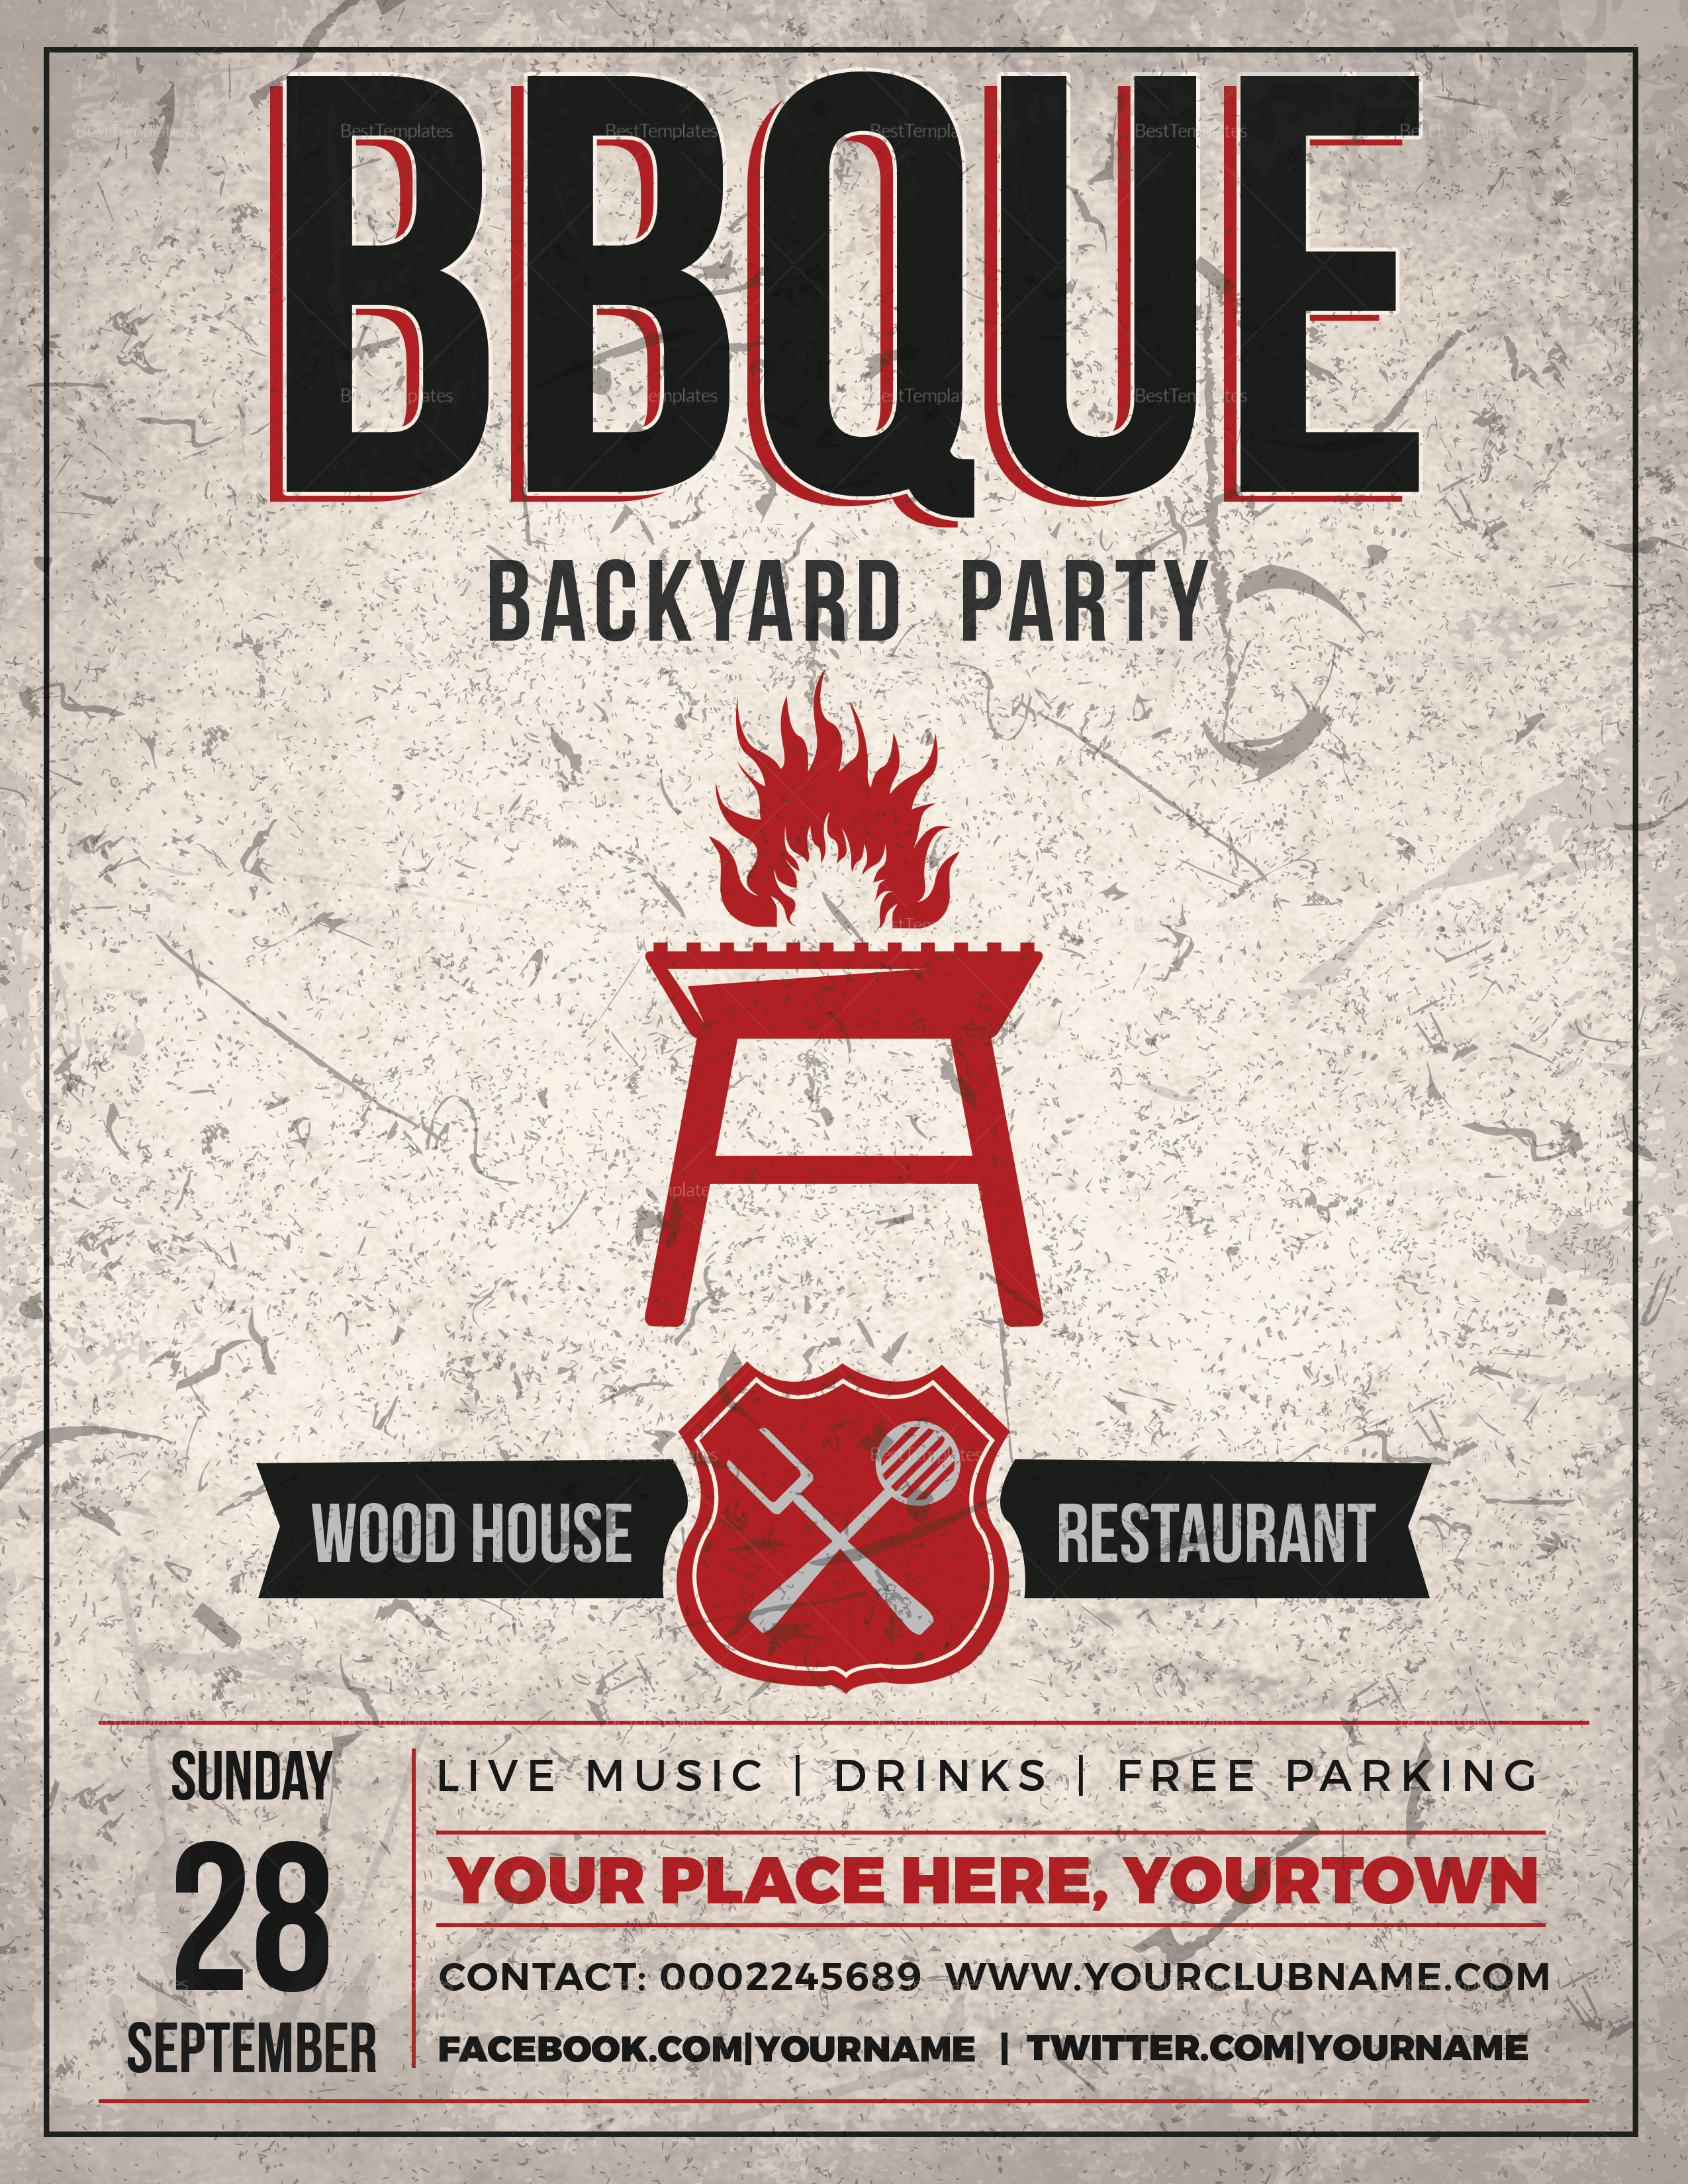 Backyard Bbq Event Flyer Design Template In Psd Word Publisher